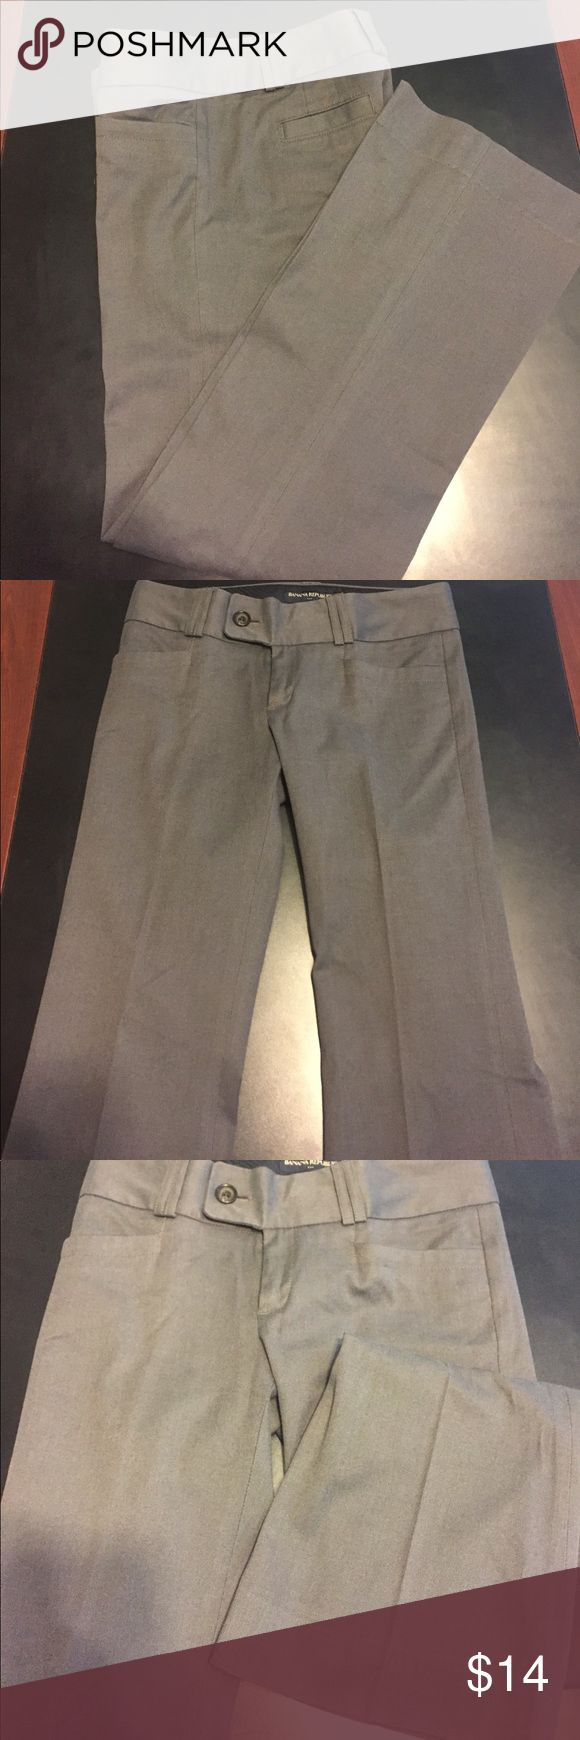 """Ladies Size 2 Banana Republic Grey Trousers Size 2 Banana Republic Grey Trousers measurements waist 30"""" length 38.5"""" Rise 8"""" Inseam 31"""" Pre-loved Banana Republic Pants Trousers"""